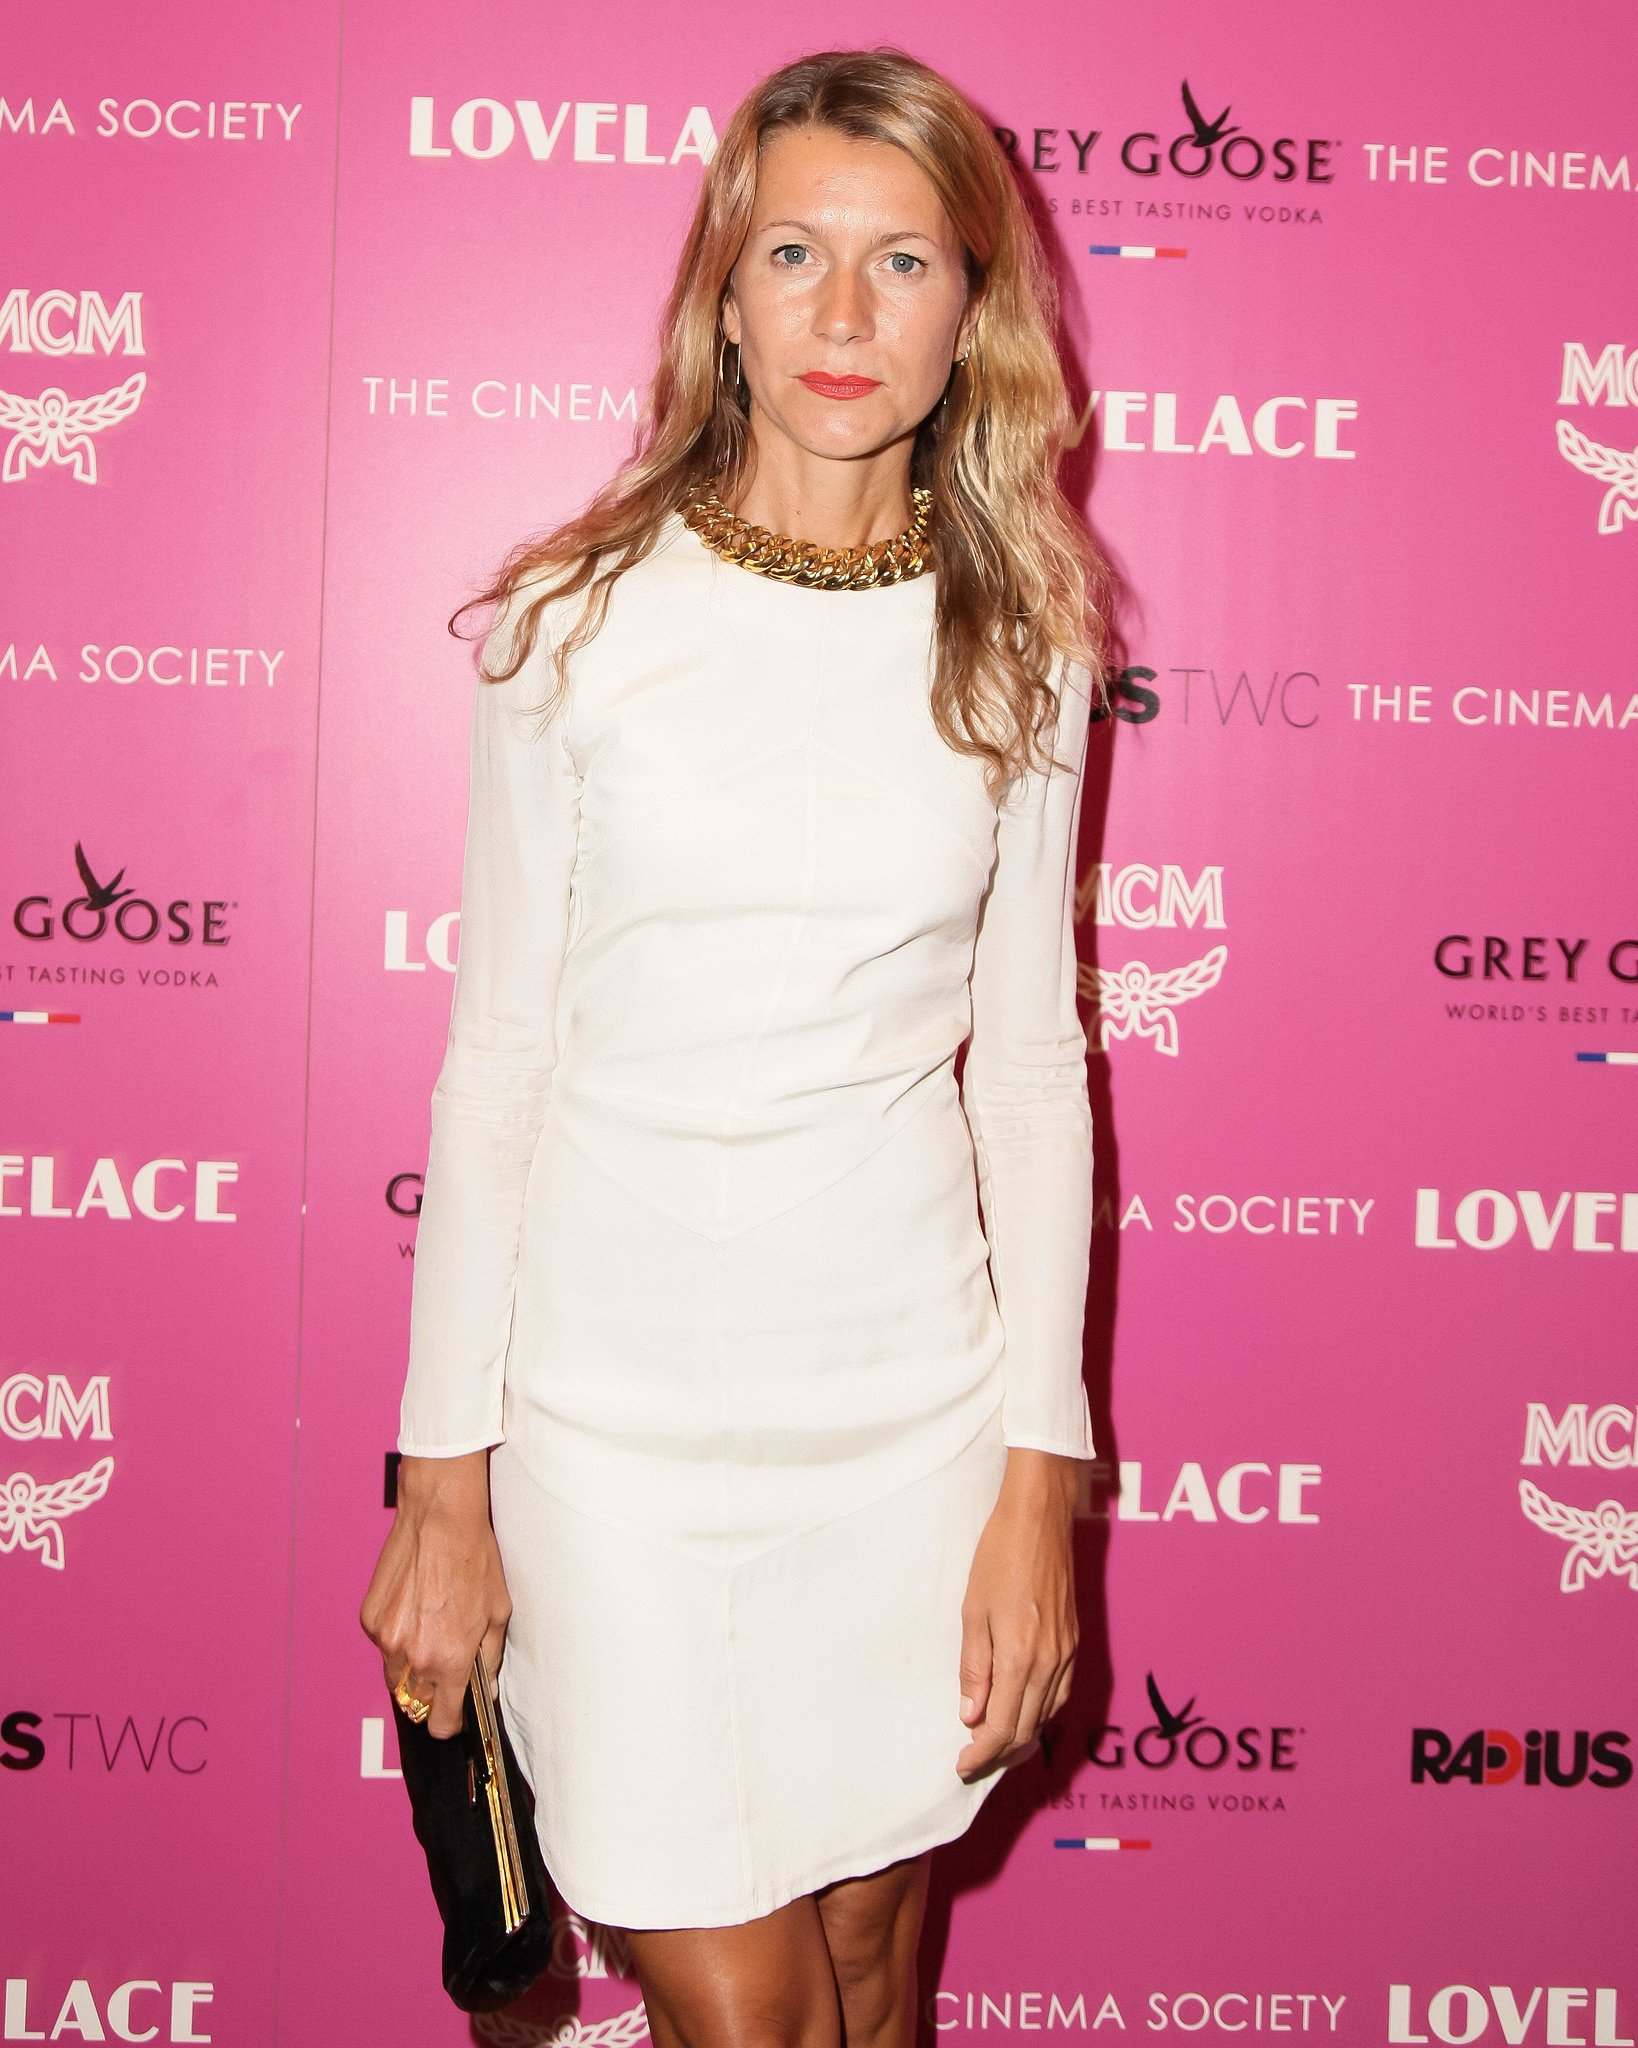 At the Lovelace screening, Natalie Joos was seasonal in an LWD.